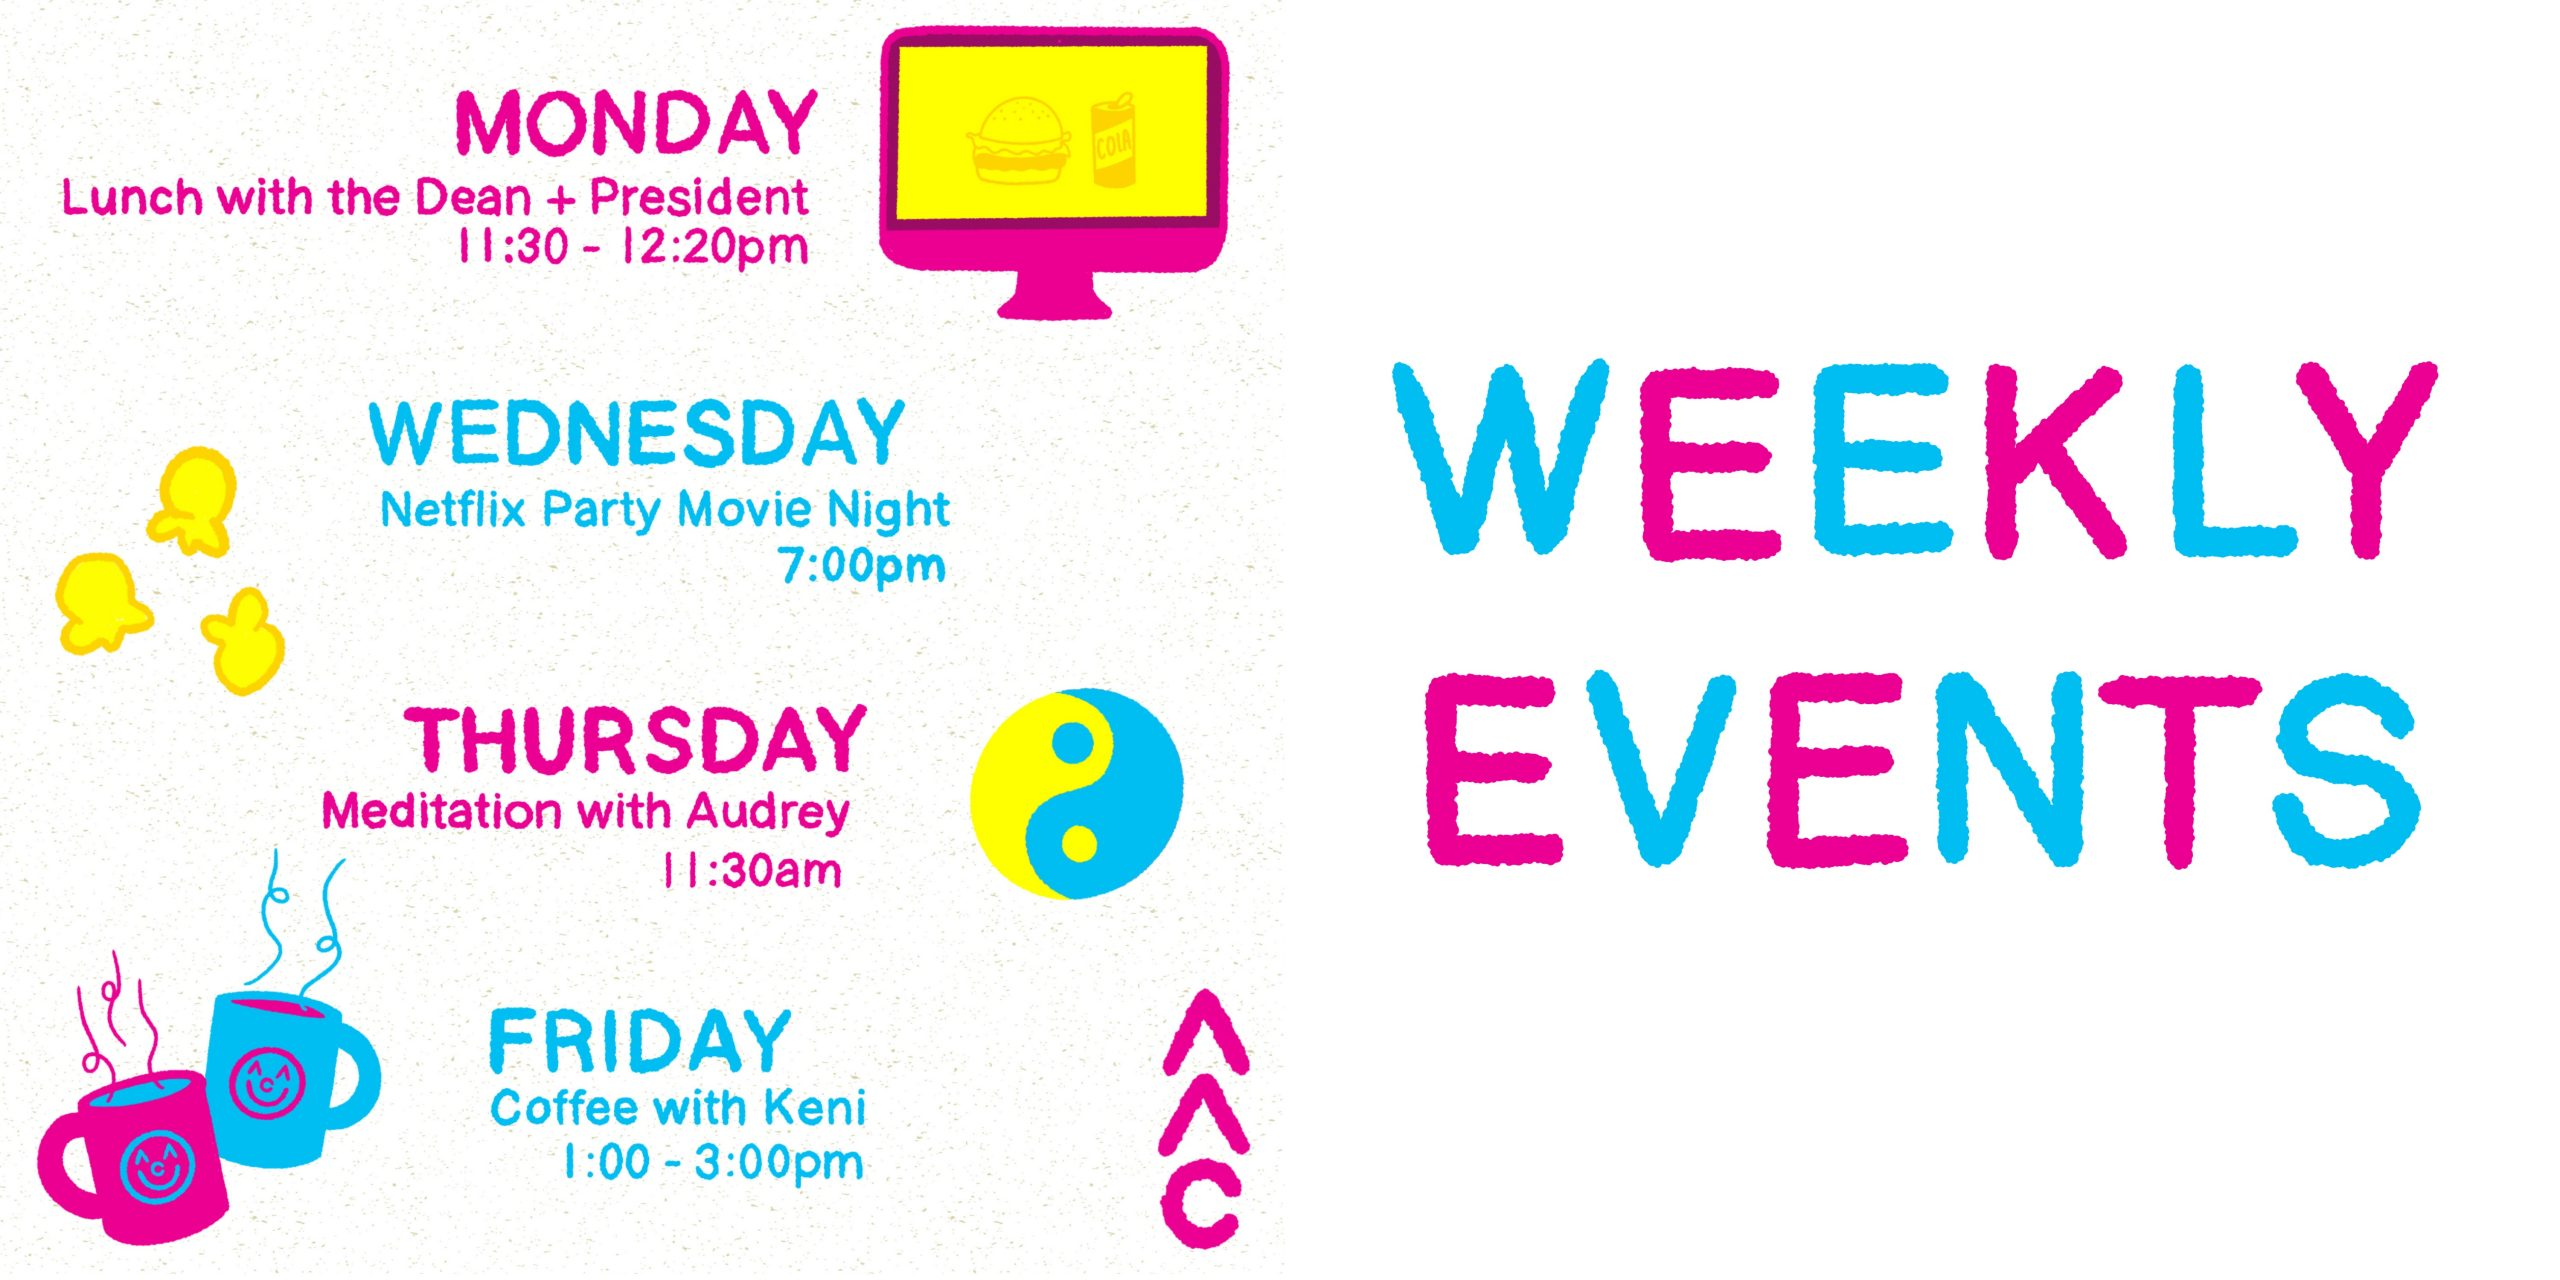 Image to help promote our remote weekly events.